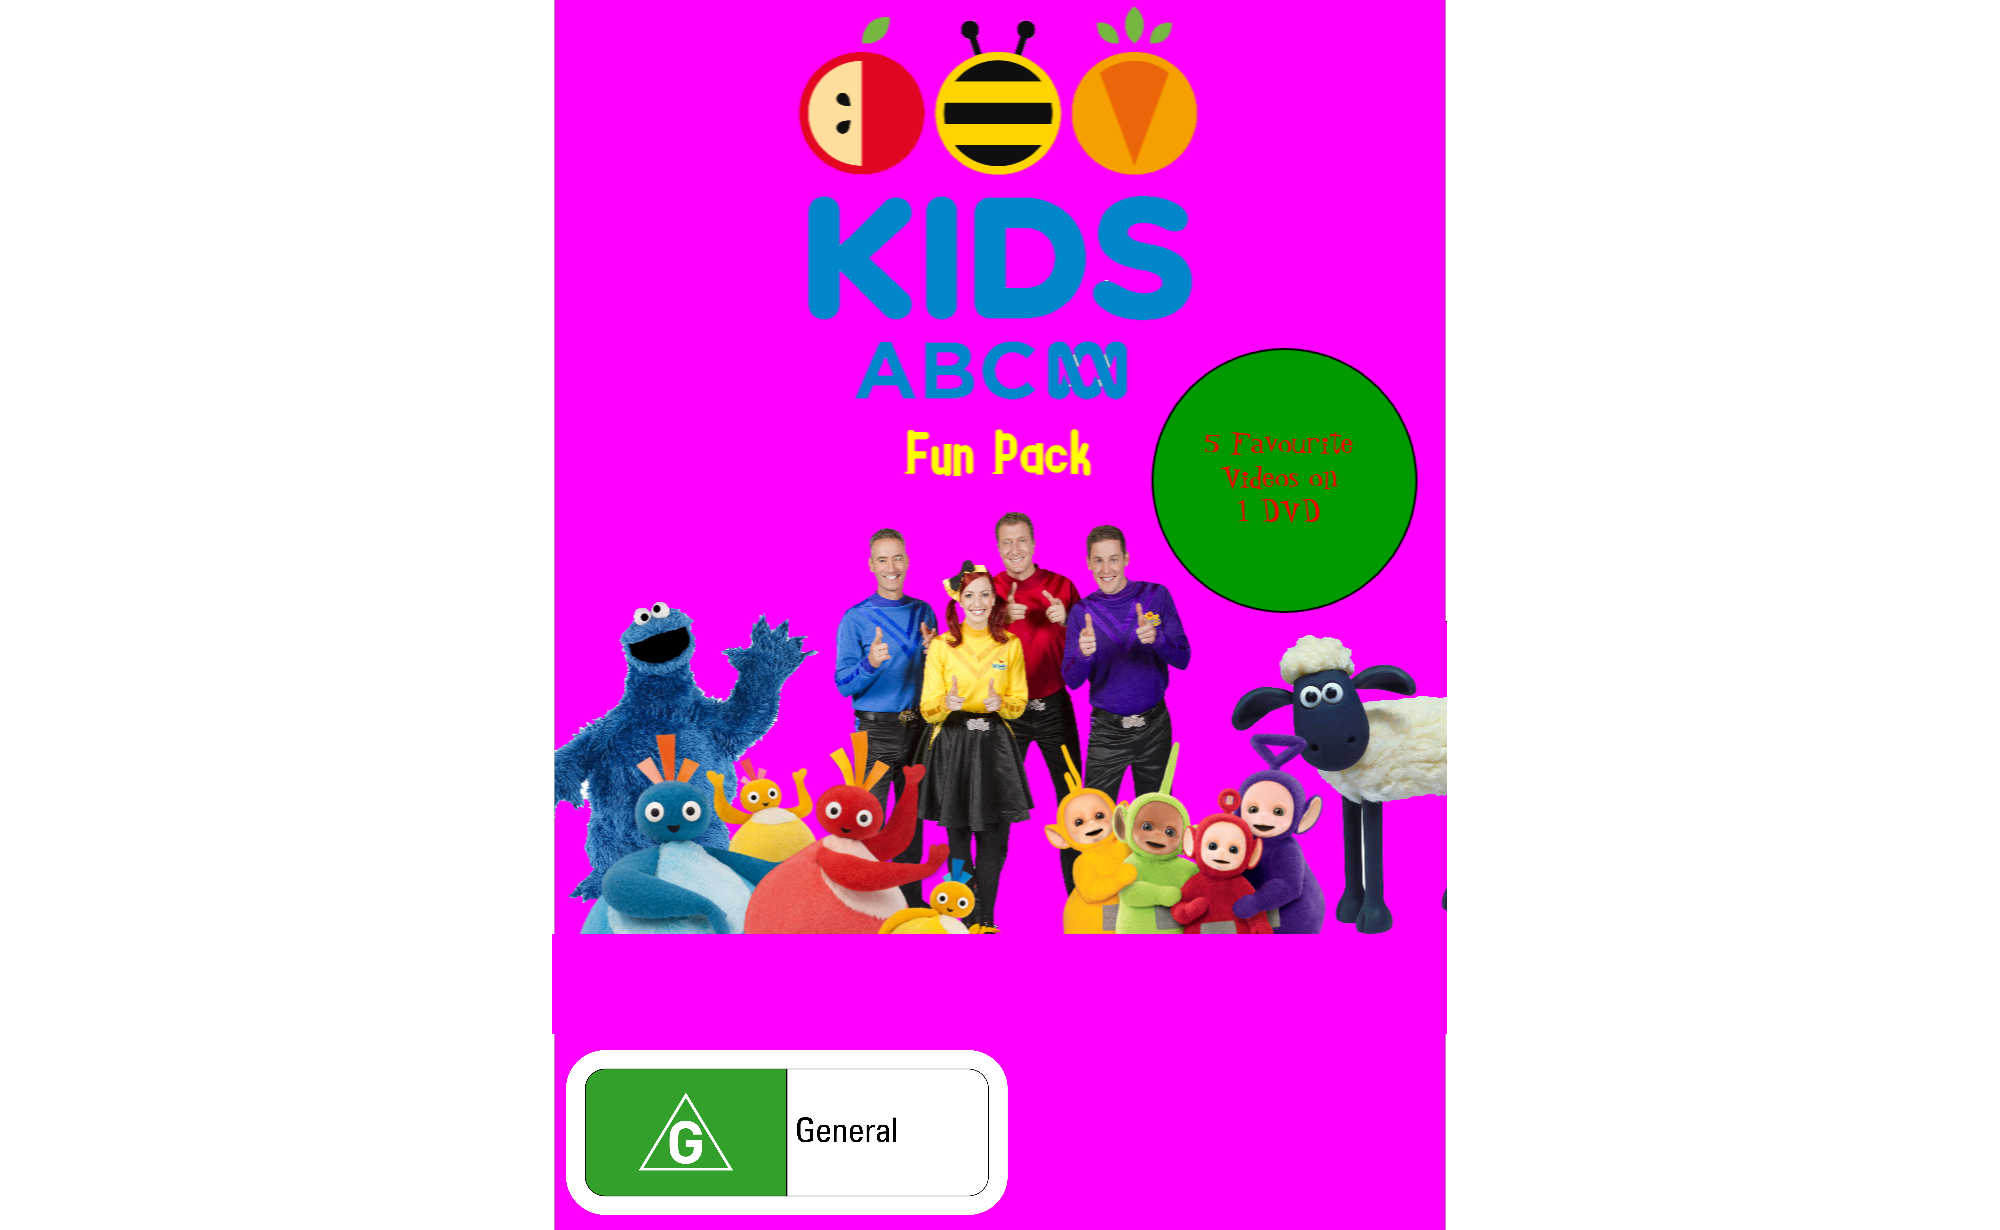 ABC For Kids Fun Pack